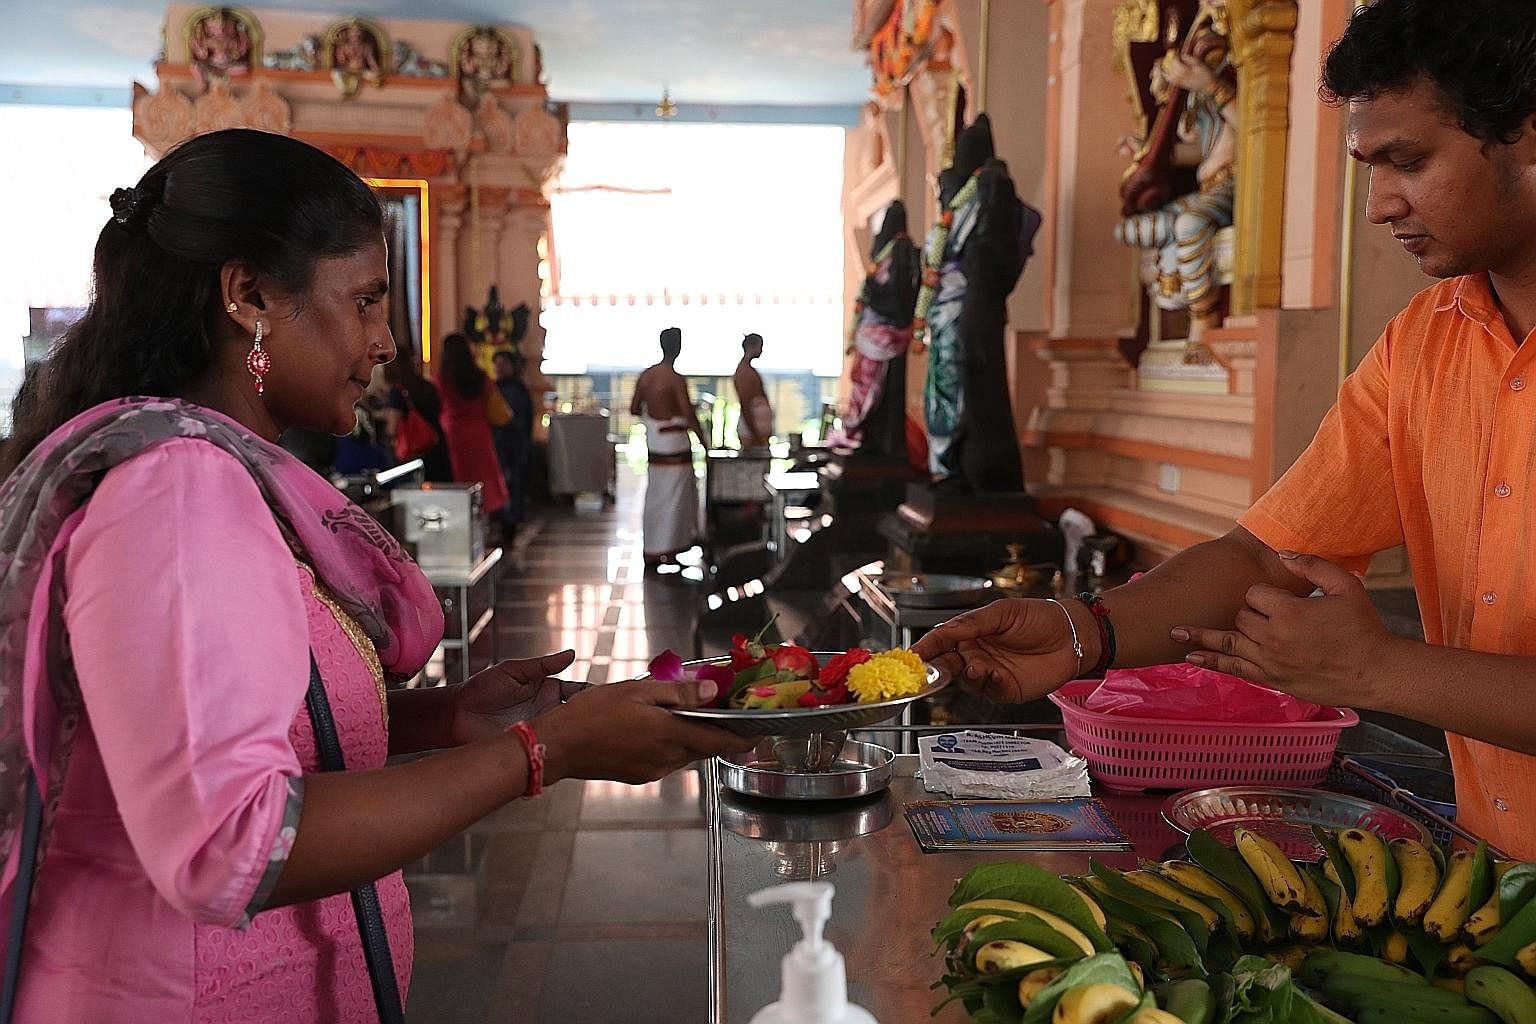 Prasadham, food and flowers that have been blessed, are given to devotees on platters, instead of by hand, to avoid unnecessary contact at Sri Darma Muneeswaran Temple.